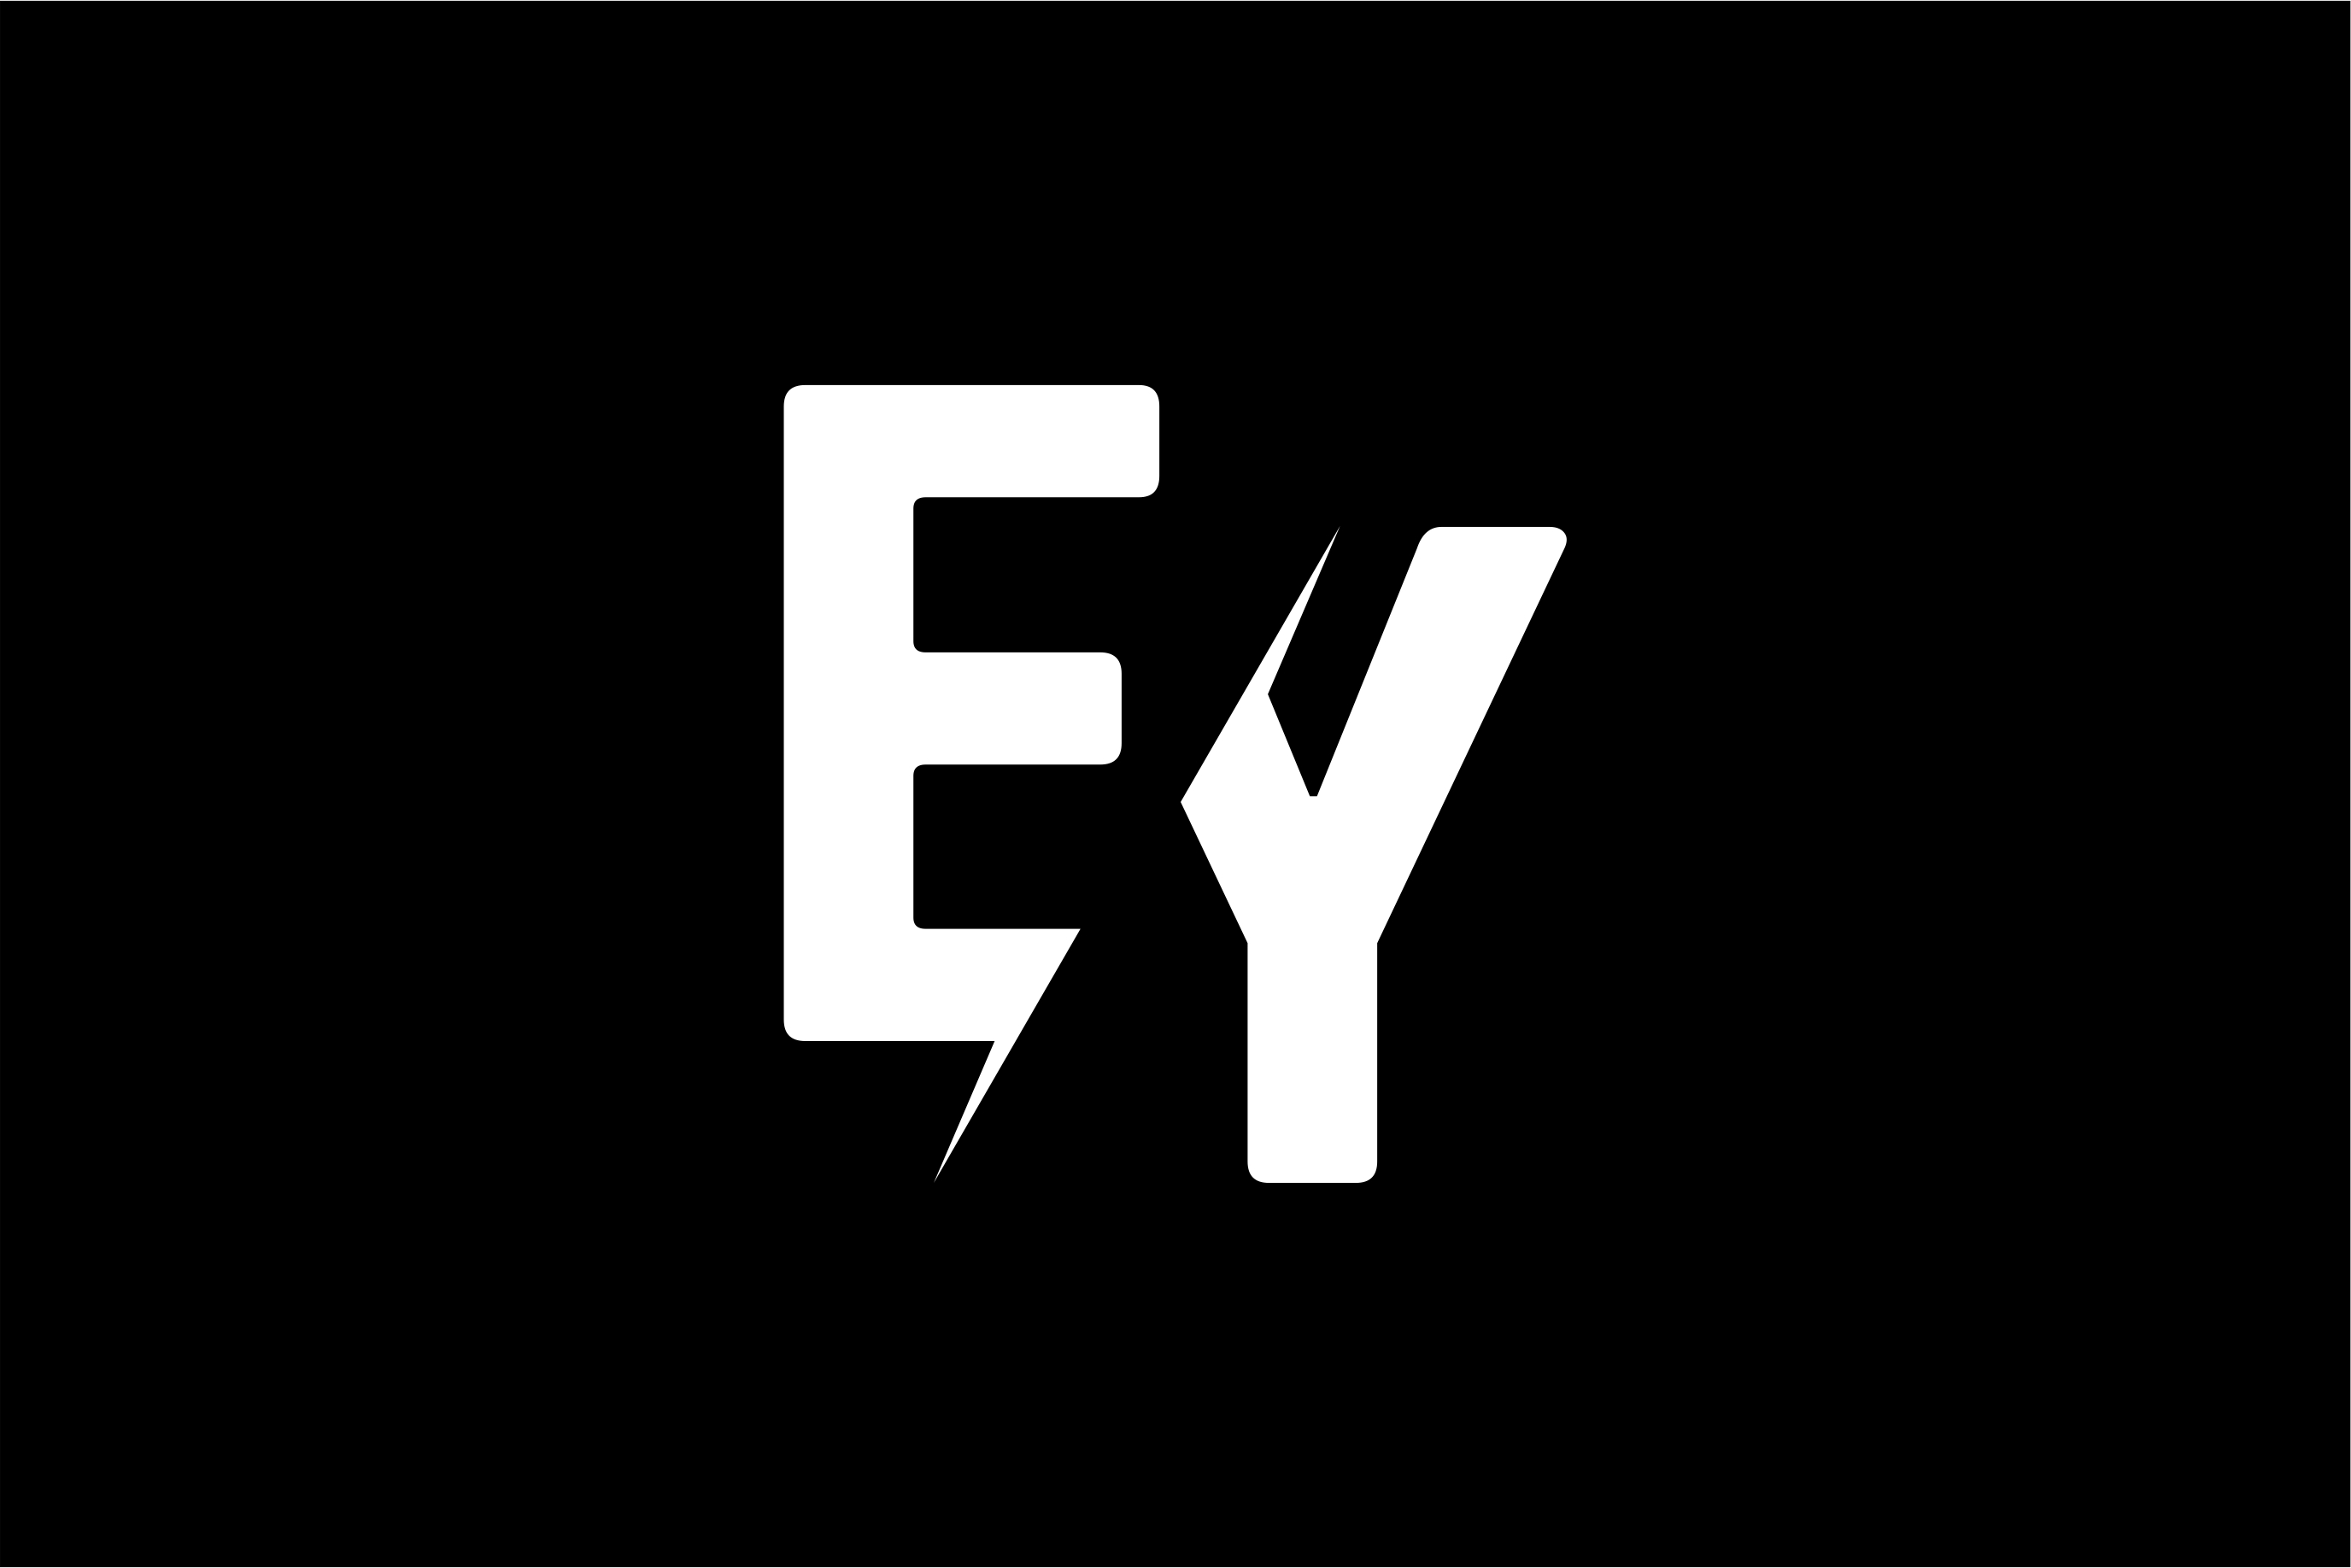 Monogram EY Logo.